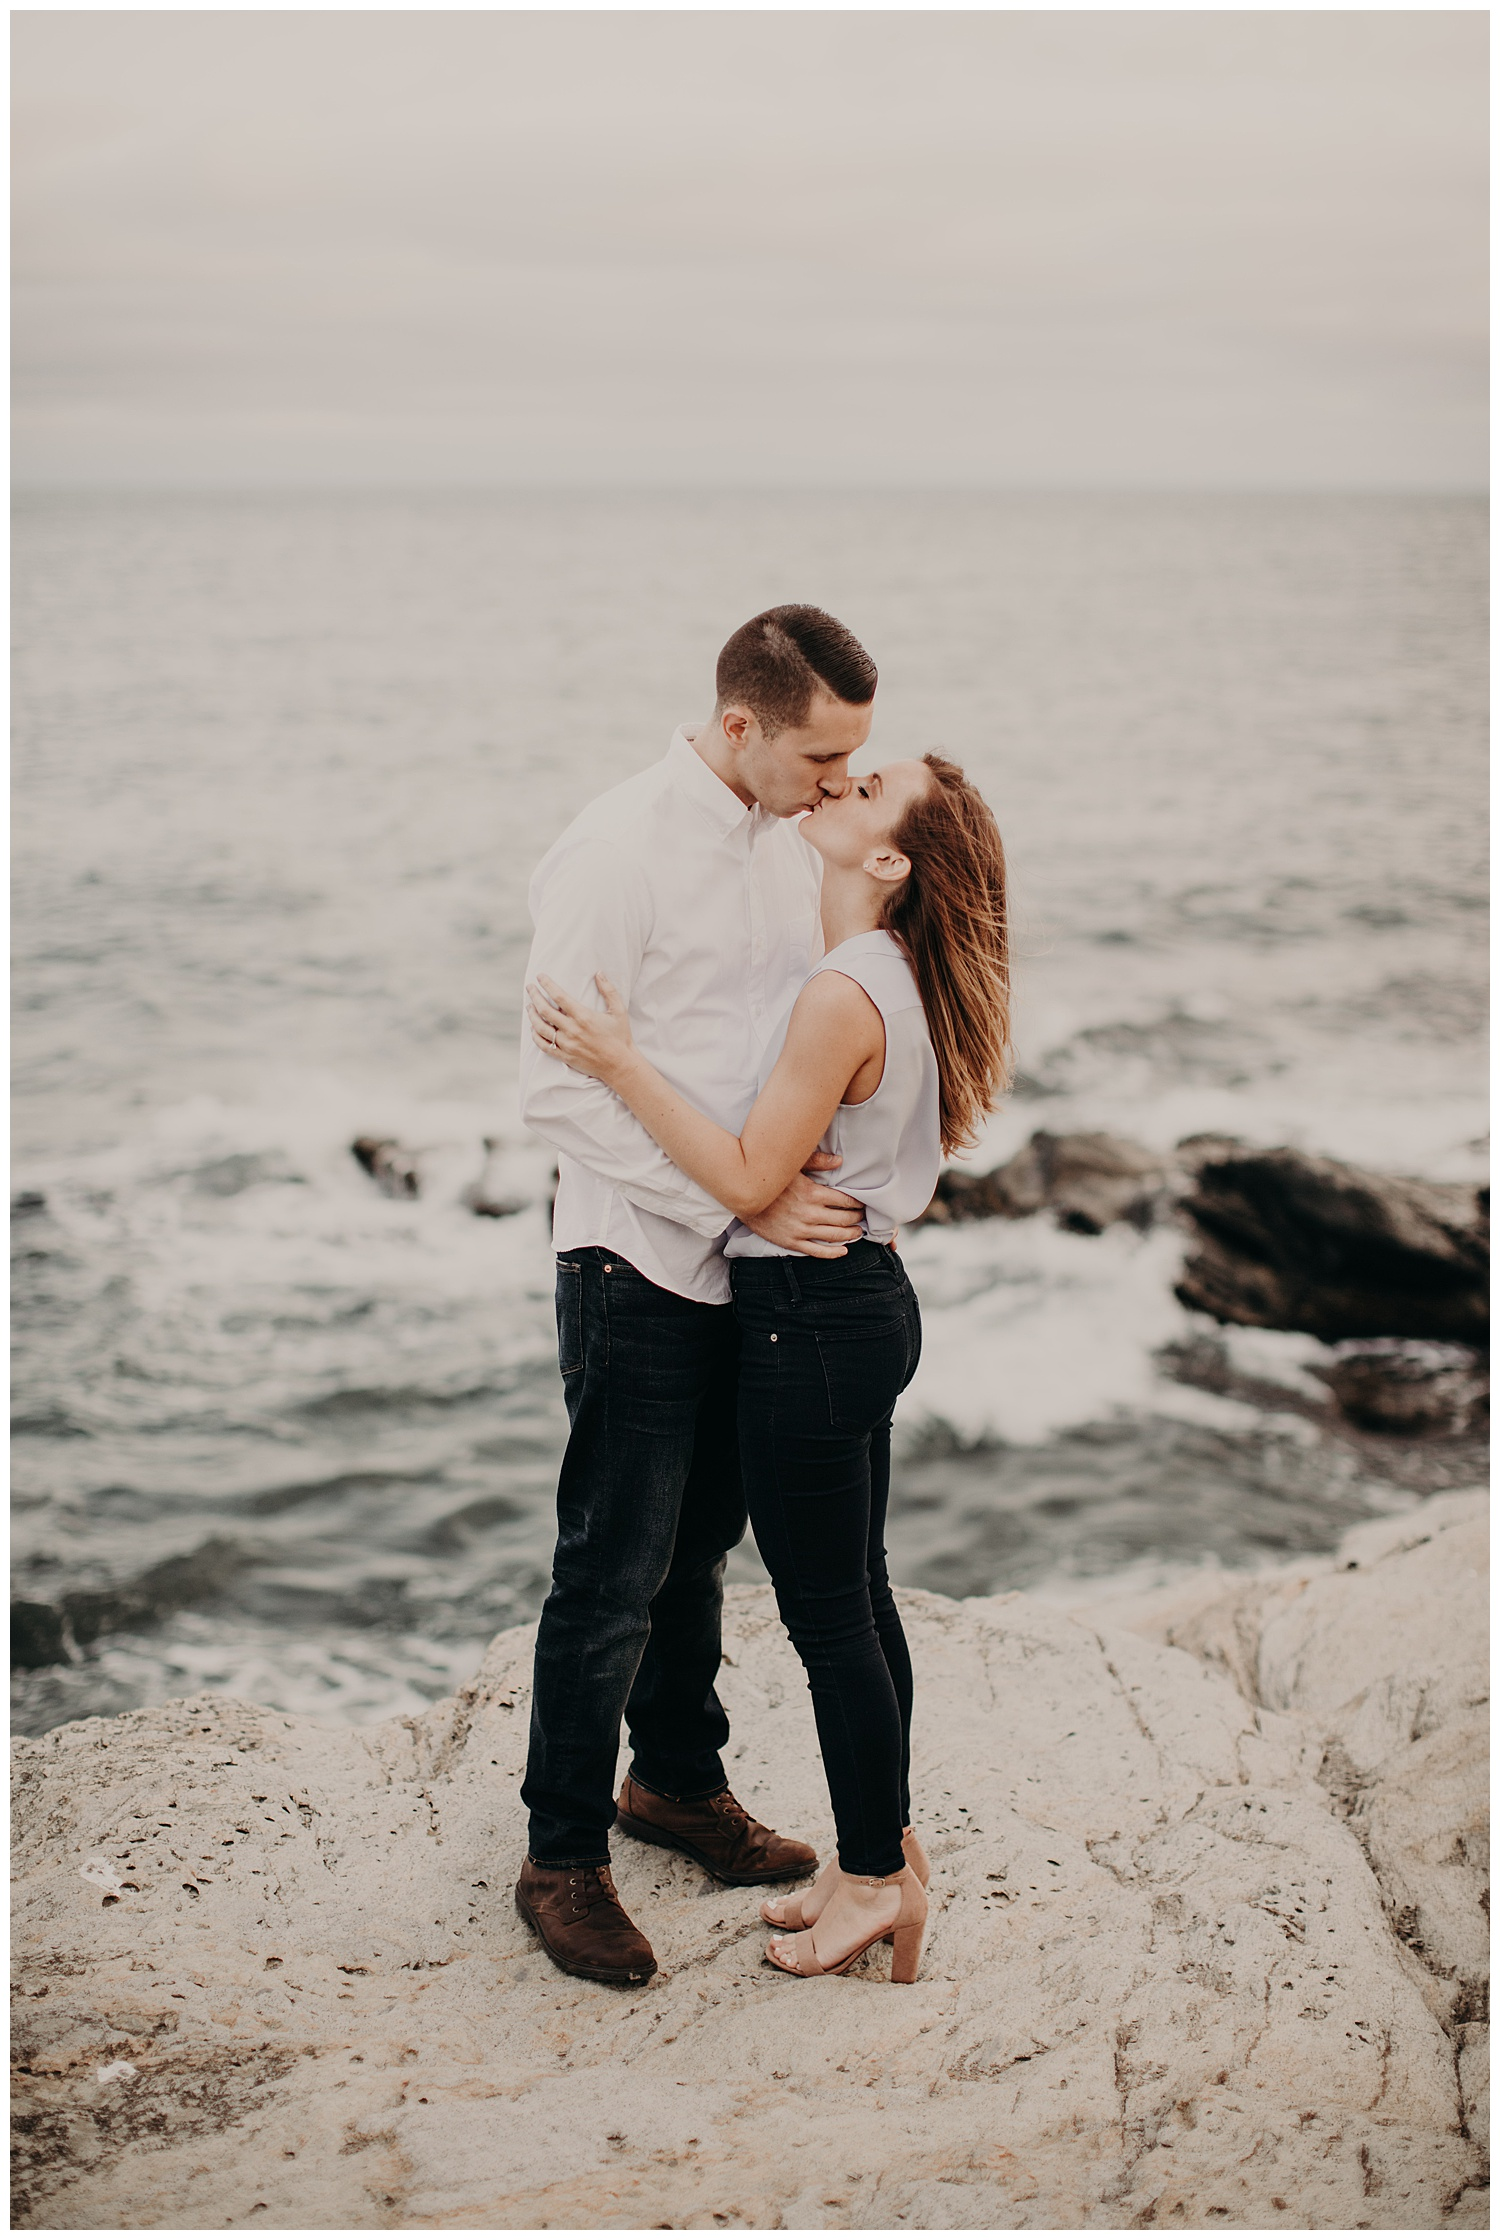 Dan_Sunni_Beavertail_Point_Engagement_Session_010.jpeg